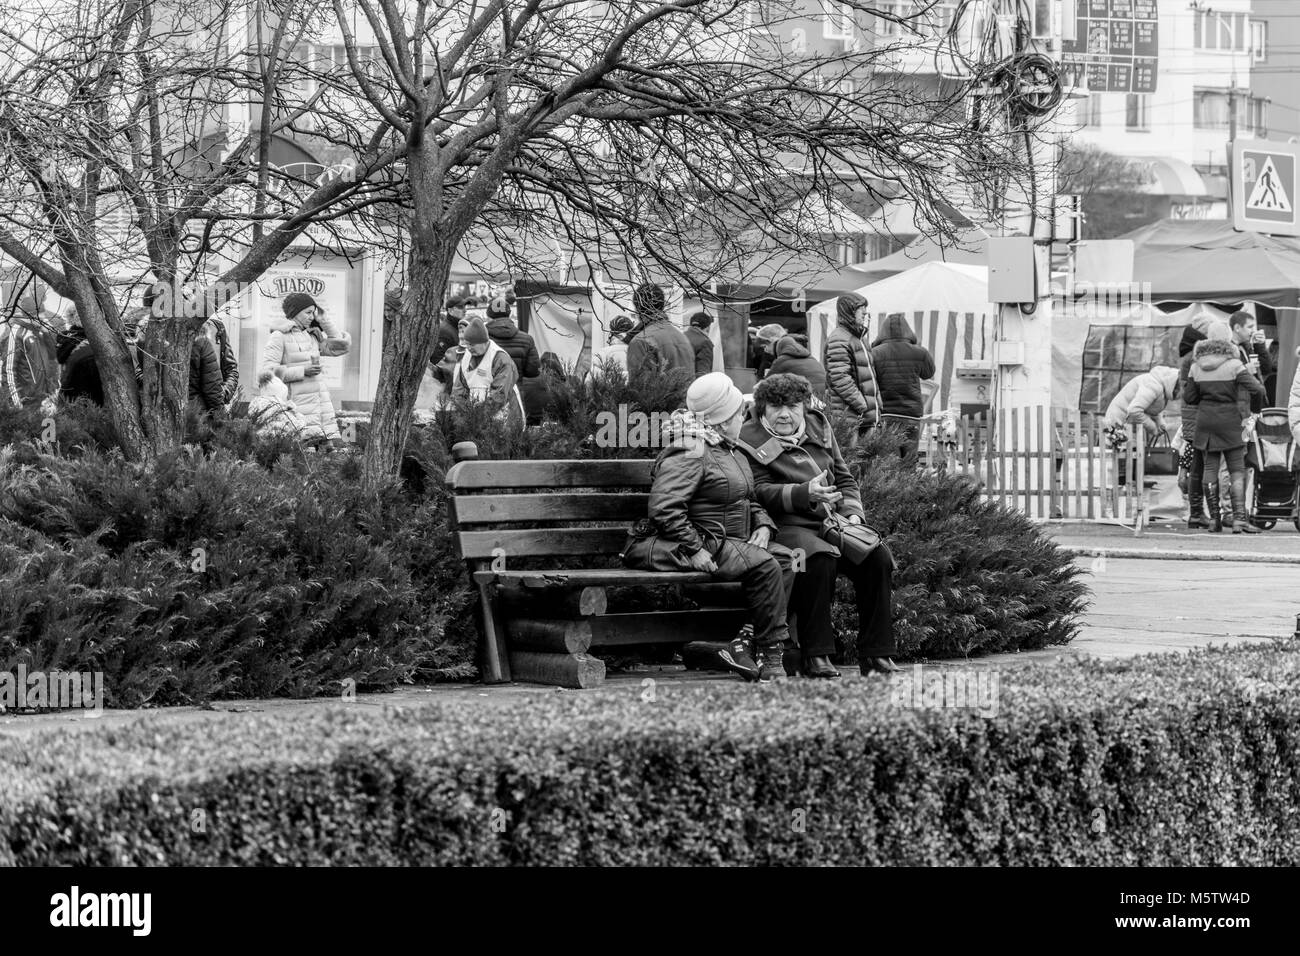 Elderly women talking on the bench, black and white reportage photo - Stock Image